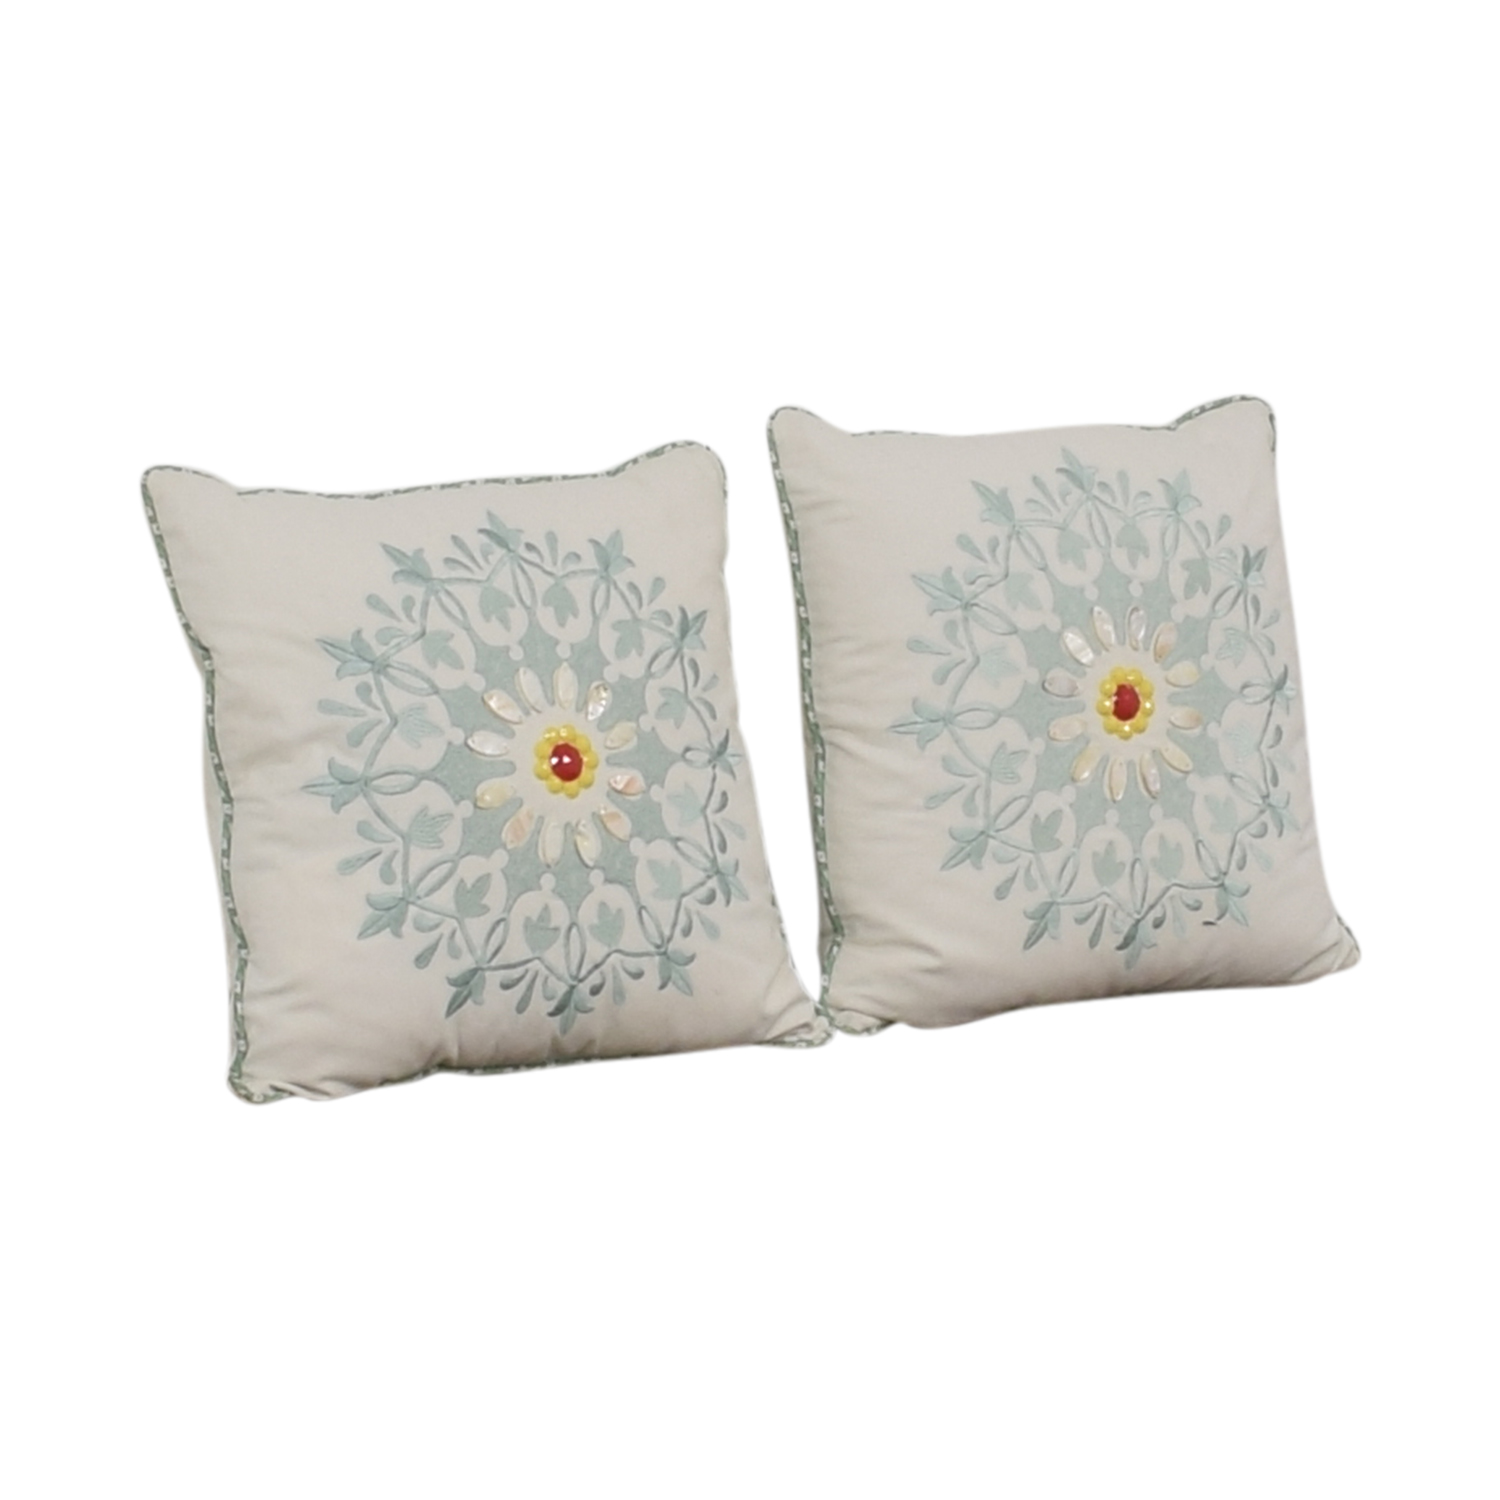 Macy's White and Blue Floral Accent Pillows / Decor